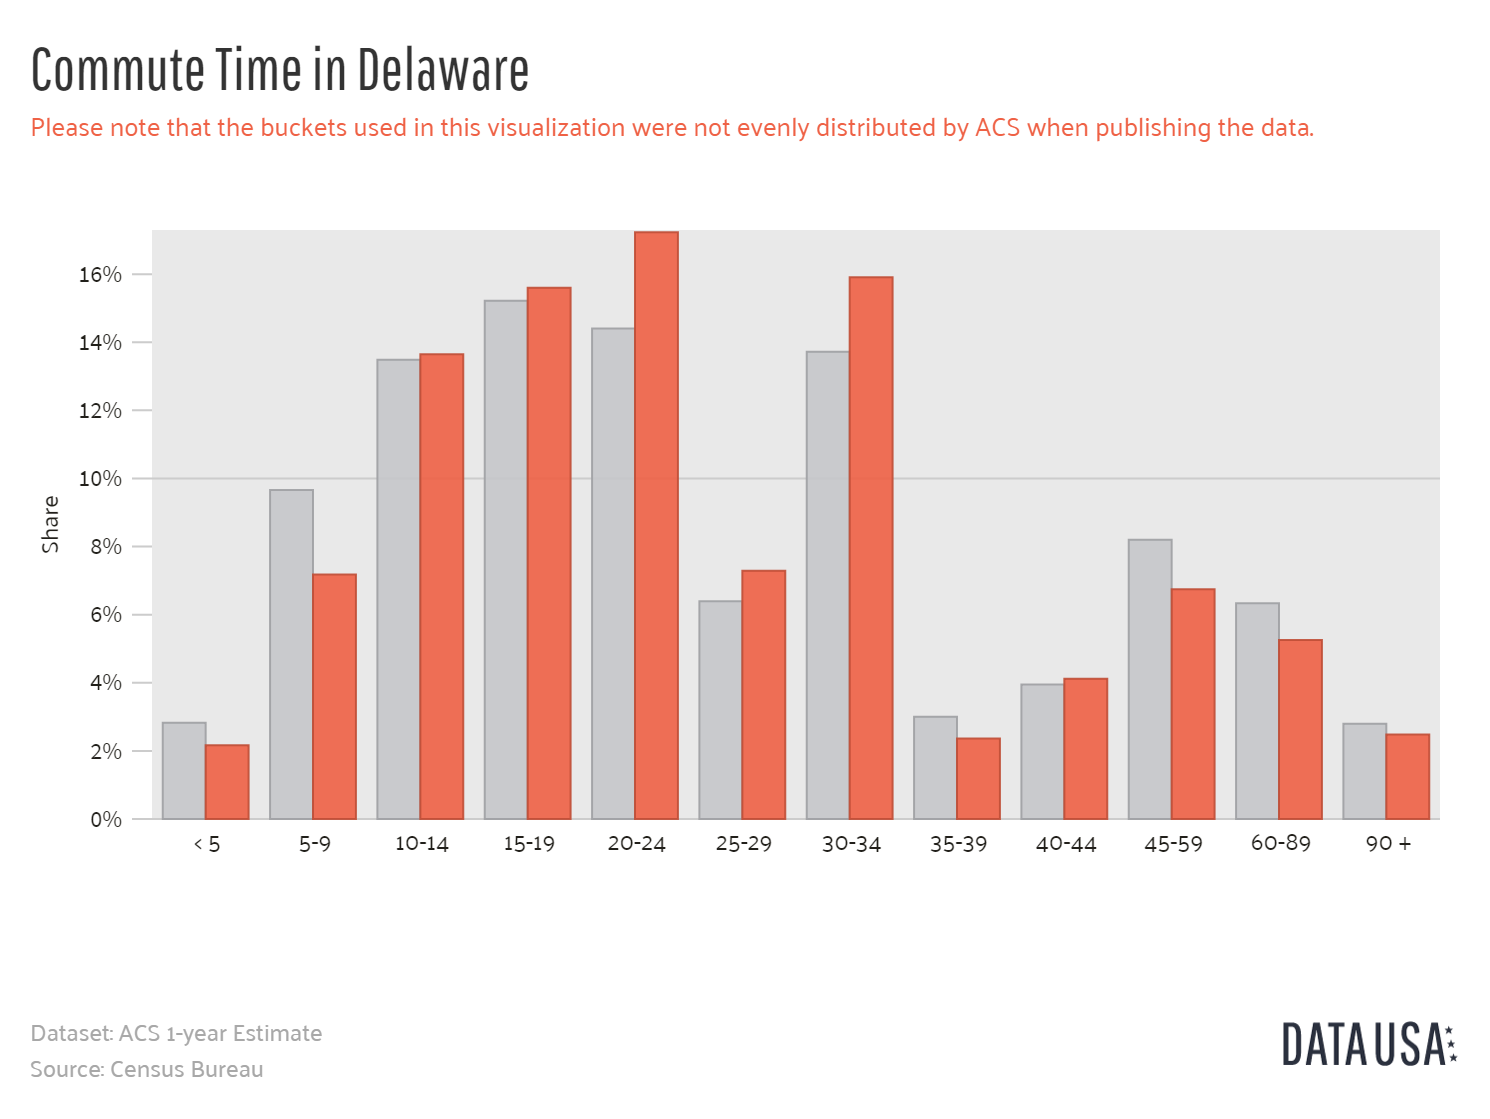 Data-USA-Bar-Chart-of-Commute-Time-in-Delaware (1)